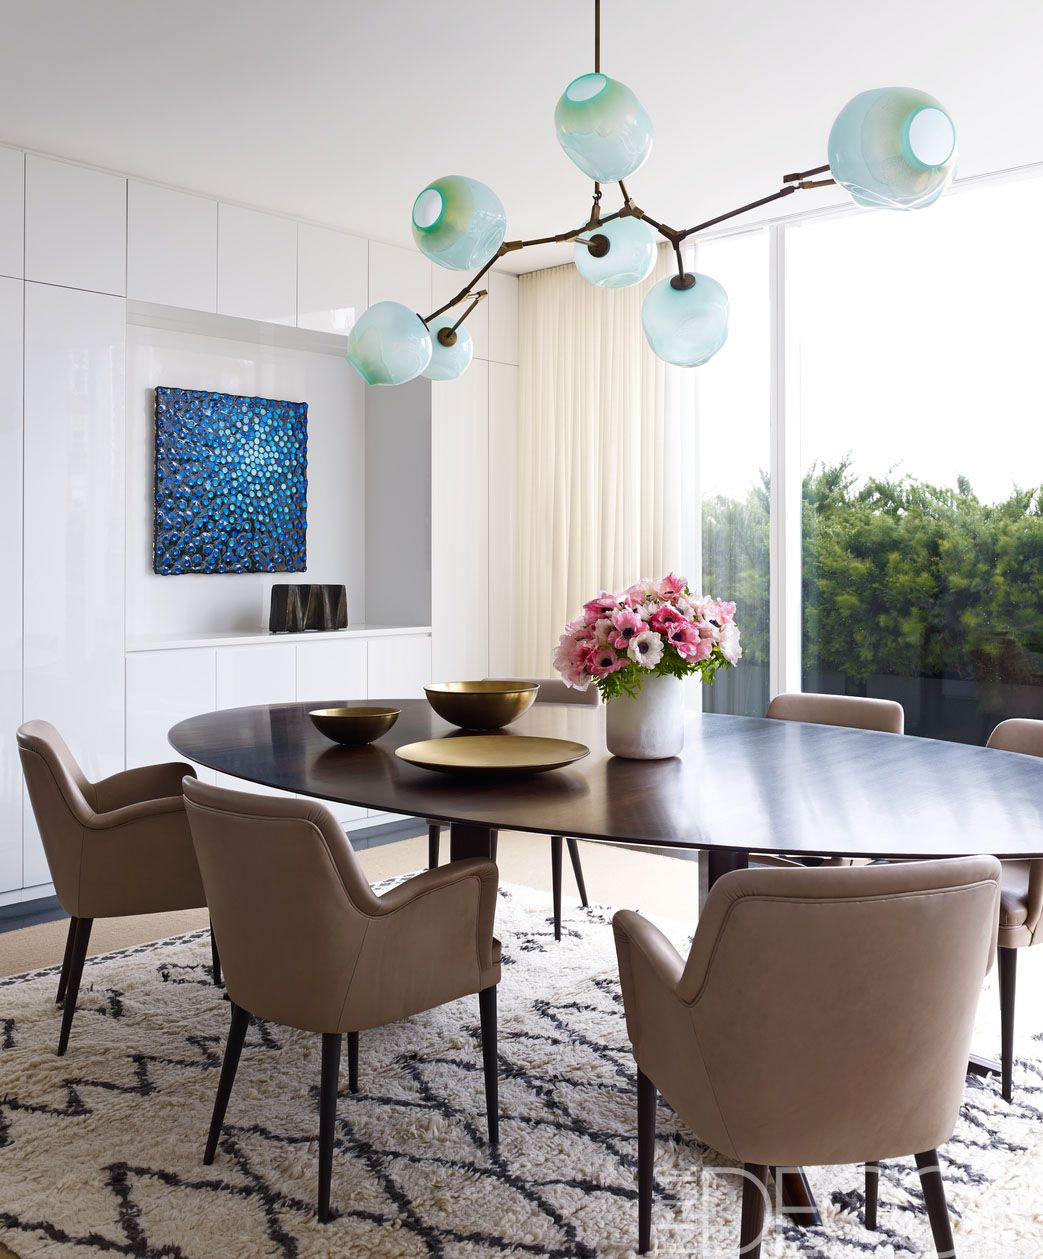 Dining Room Inspirations 25 modern dining room decorating ideas - contemporary dining room